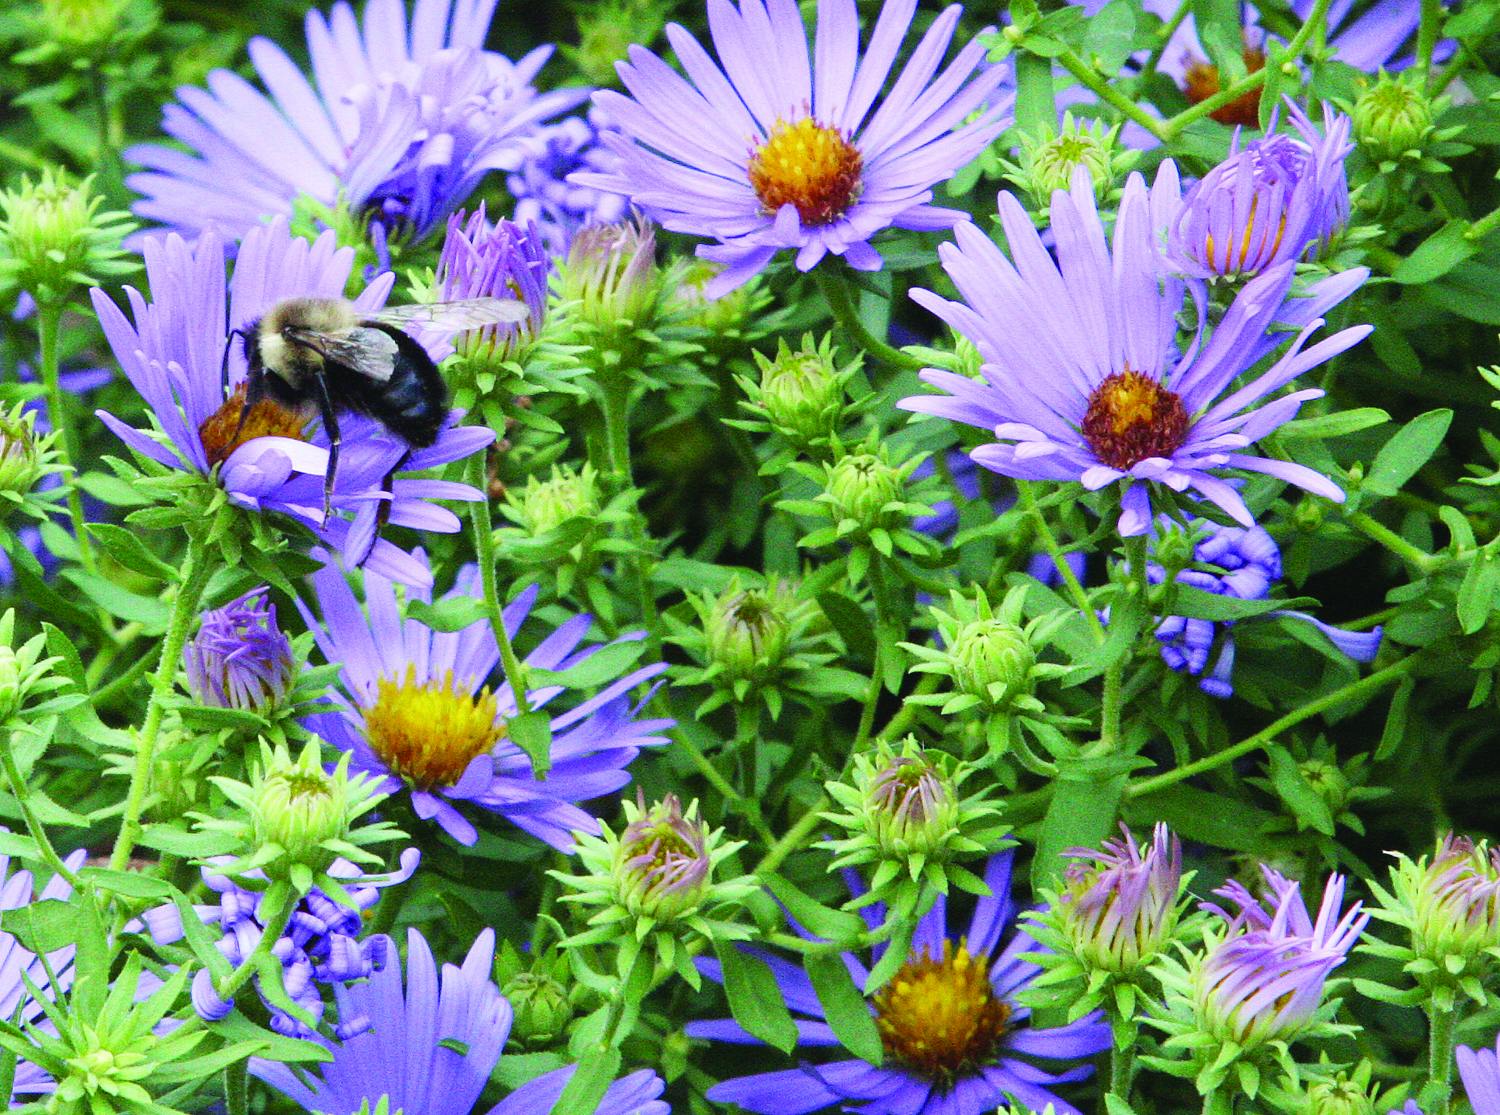 A photo of a bee on an aster flower.